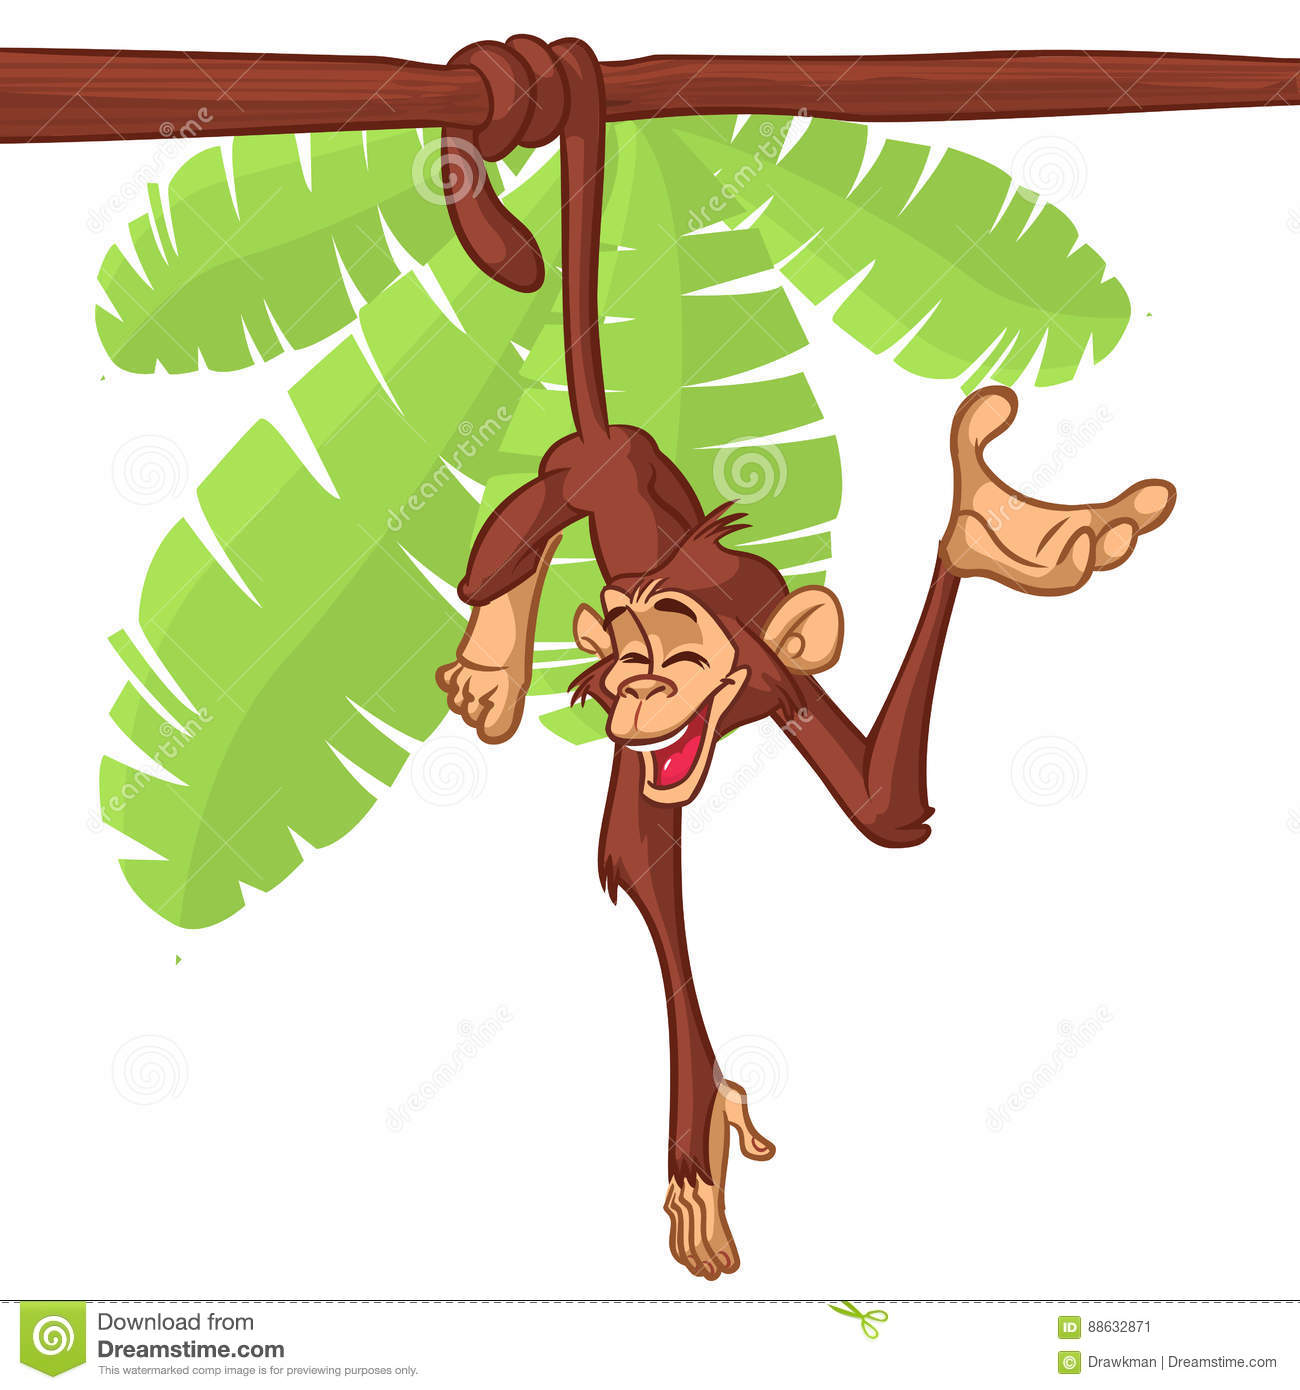 Cartoon Monkey Hanging From The Tree On Its Tail. Vector.